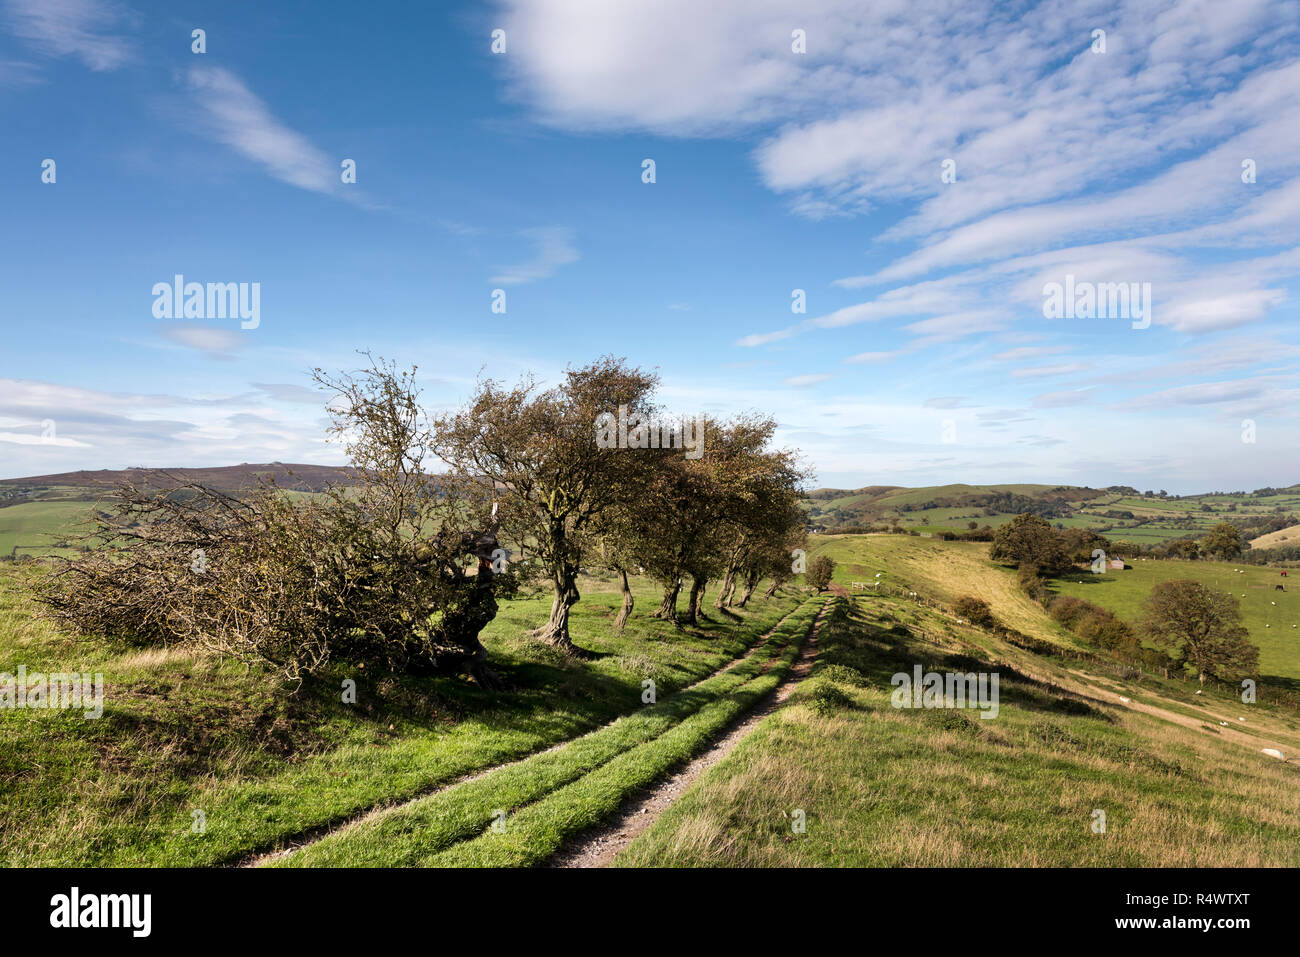 Adstone Hill on The Shropshire Way long-distance path, Shropshire Hills Area of Outstanding Natural Beauty, near Bridges, Shropshire - Stock Image